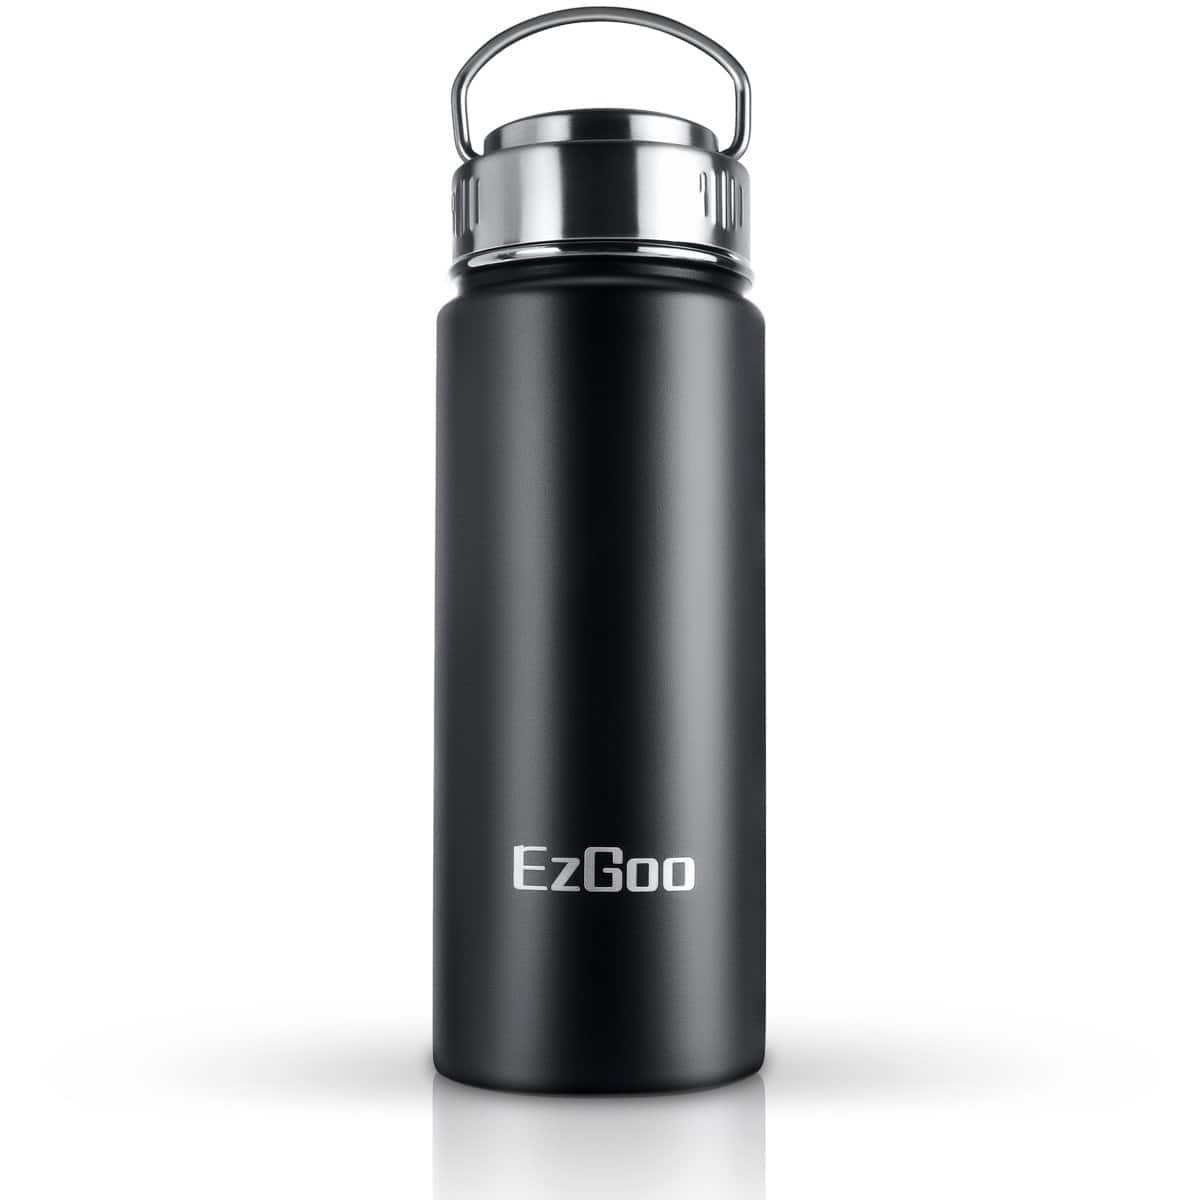 EzGoo Stainless Steel BPA Free Double Wall Vacuum Insulated Leak Proof Water Bottle $7.99